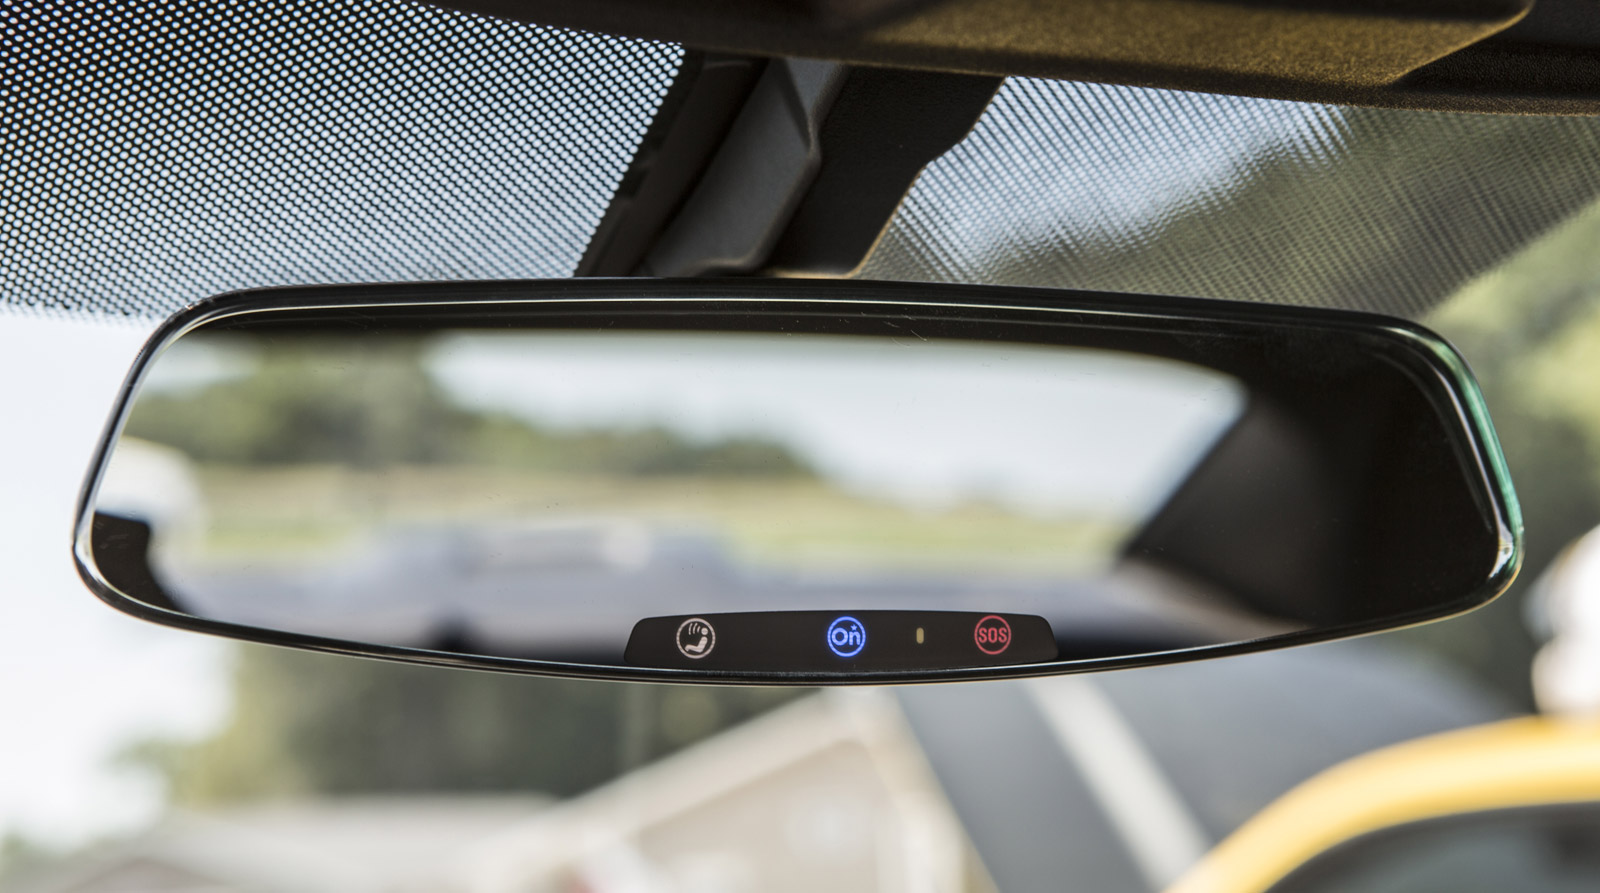 2013 Chevy Camaro Gets Frameless Rear-View Mirror In ...